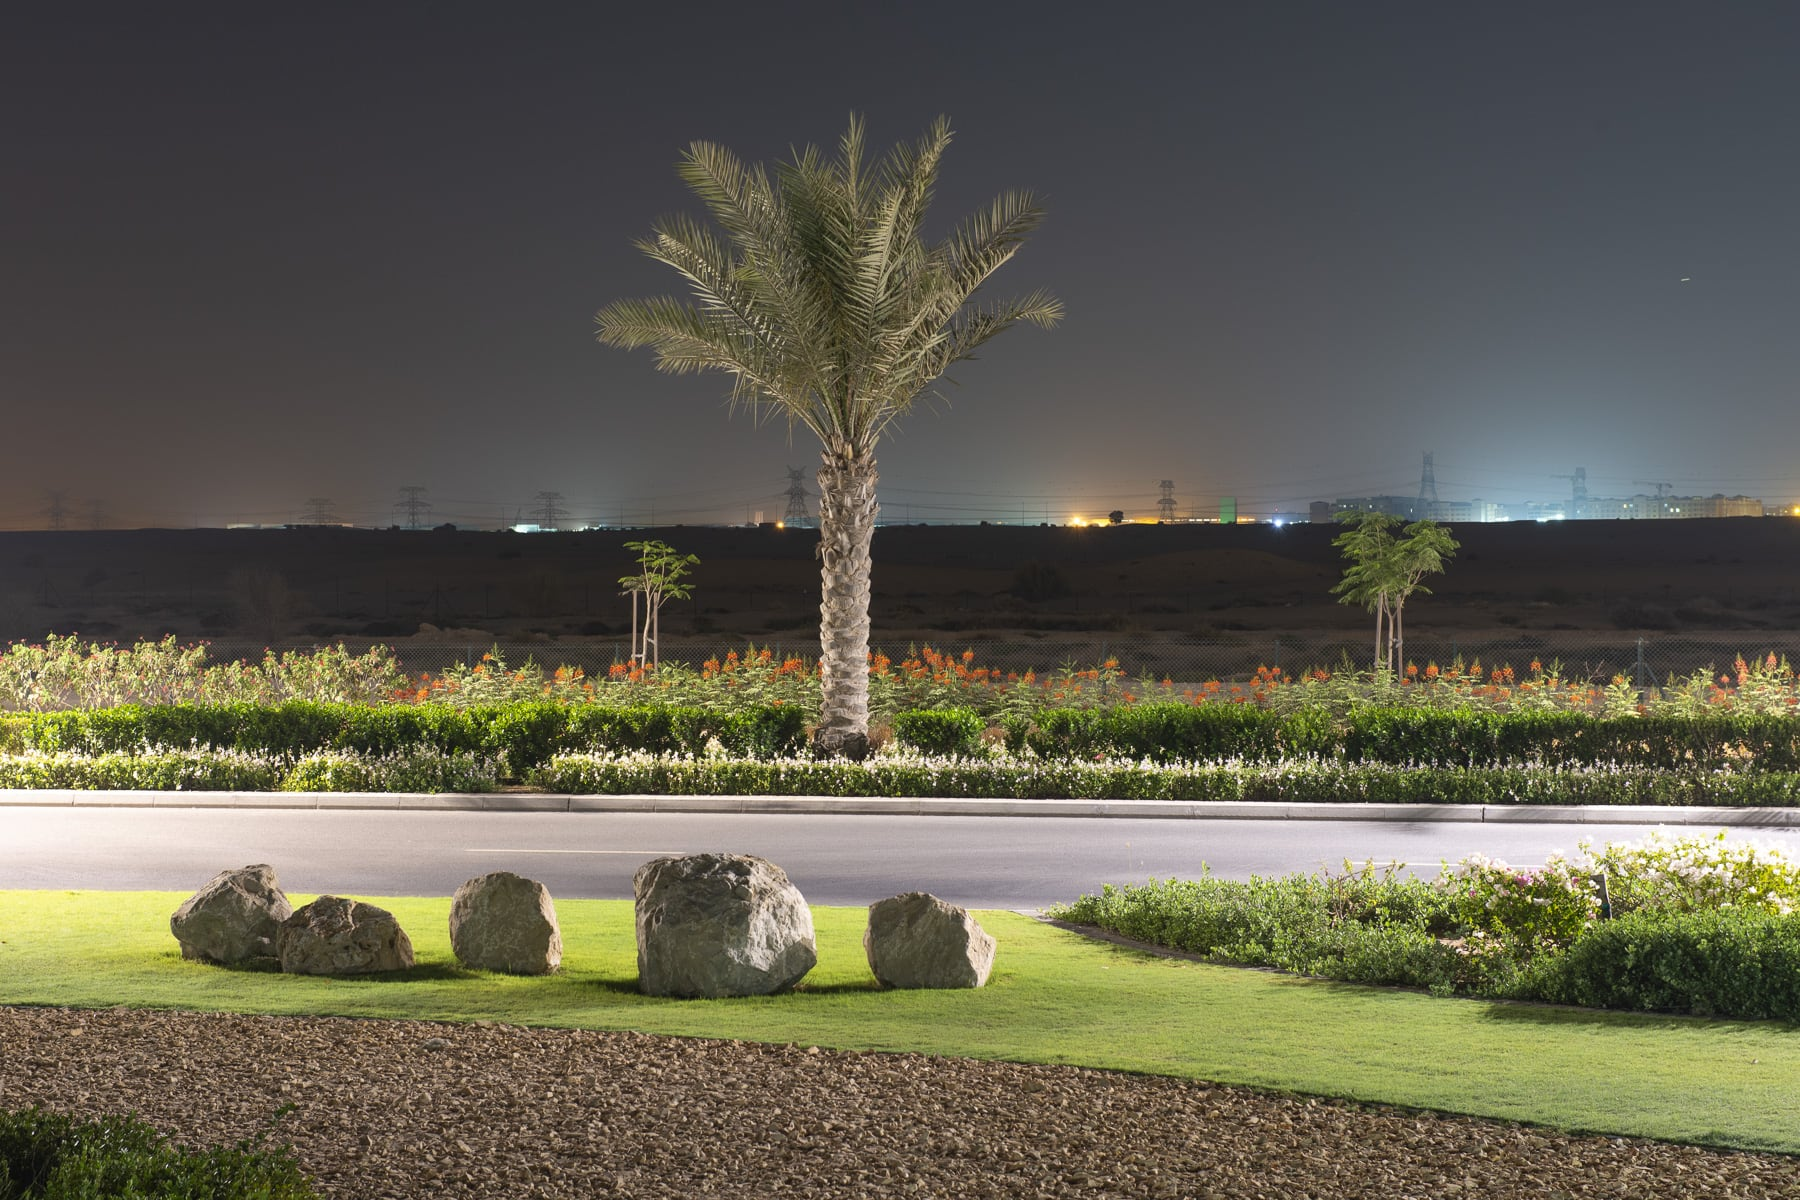 Jumeirah Golf Estates #4, 2015